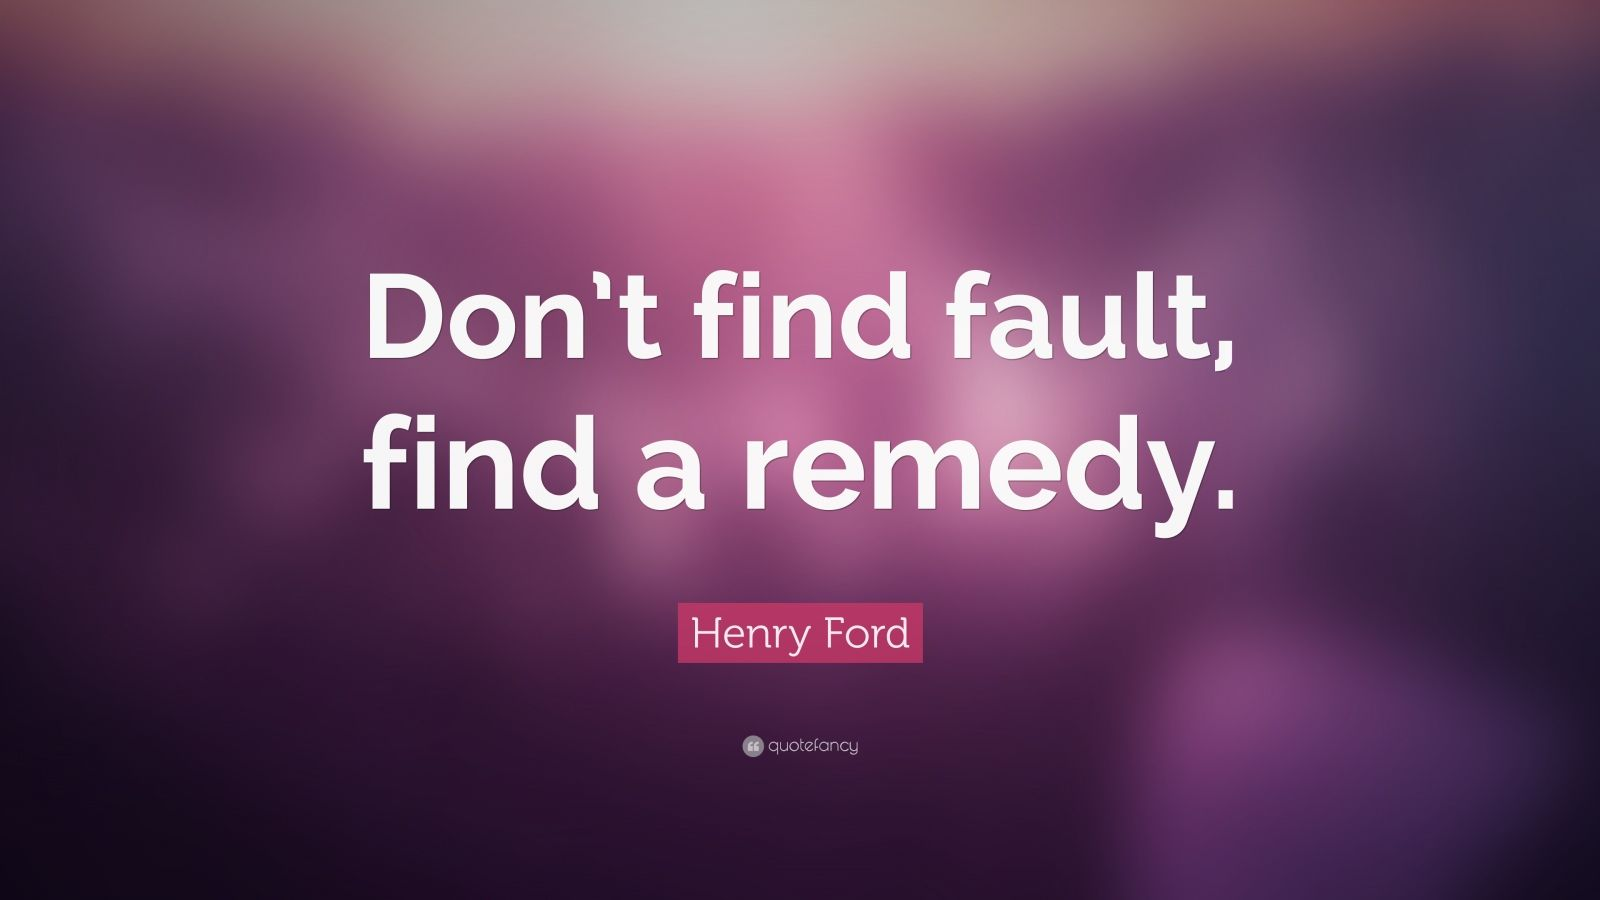 Inspirational Quotes About Life Wallpaper Henry Ford Quote Don T Find Fault Find A Remedy 24